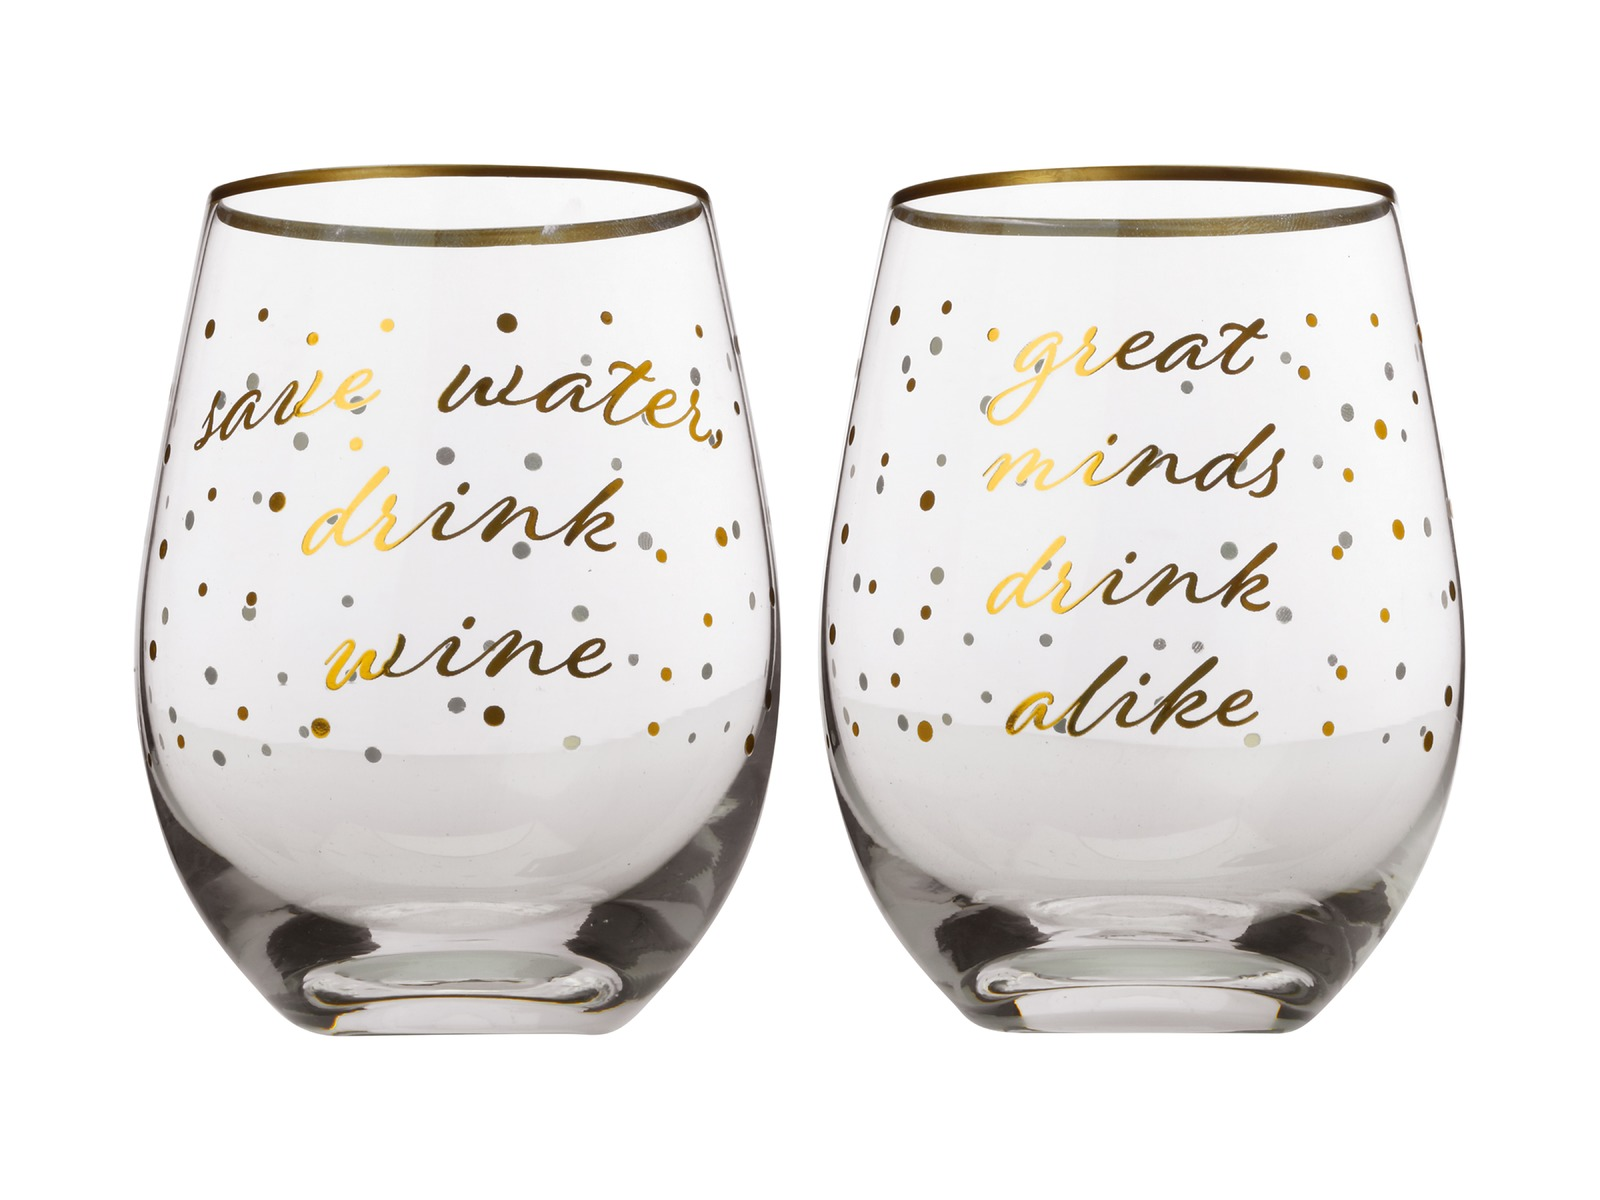 Maxwell & Williams Celebrations Stemless Glasses - Save Water / Great Minds image